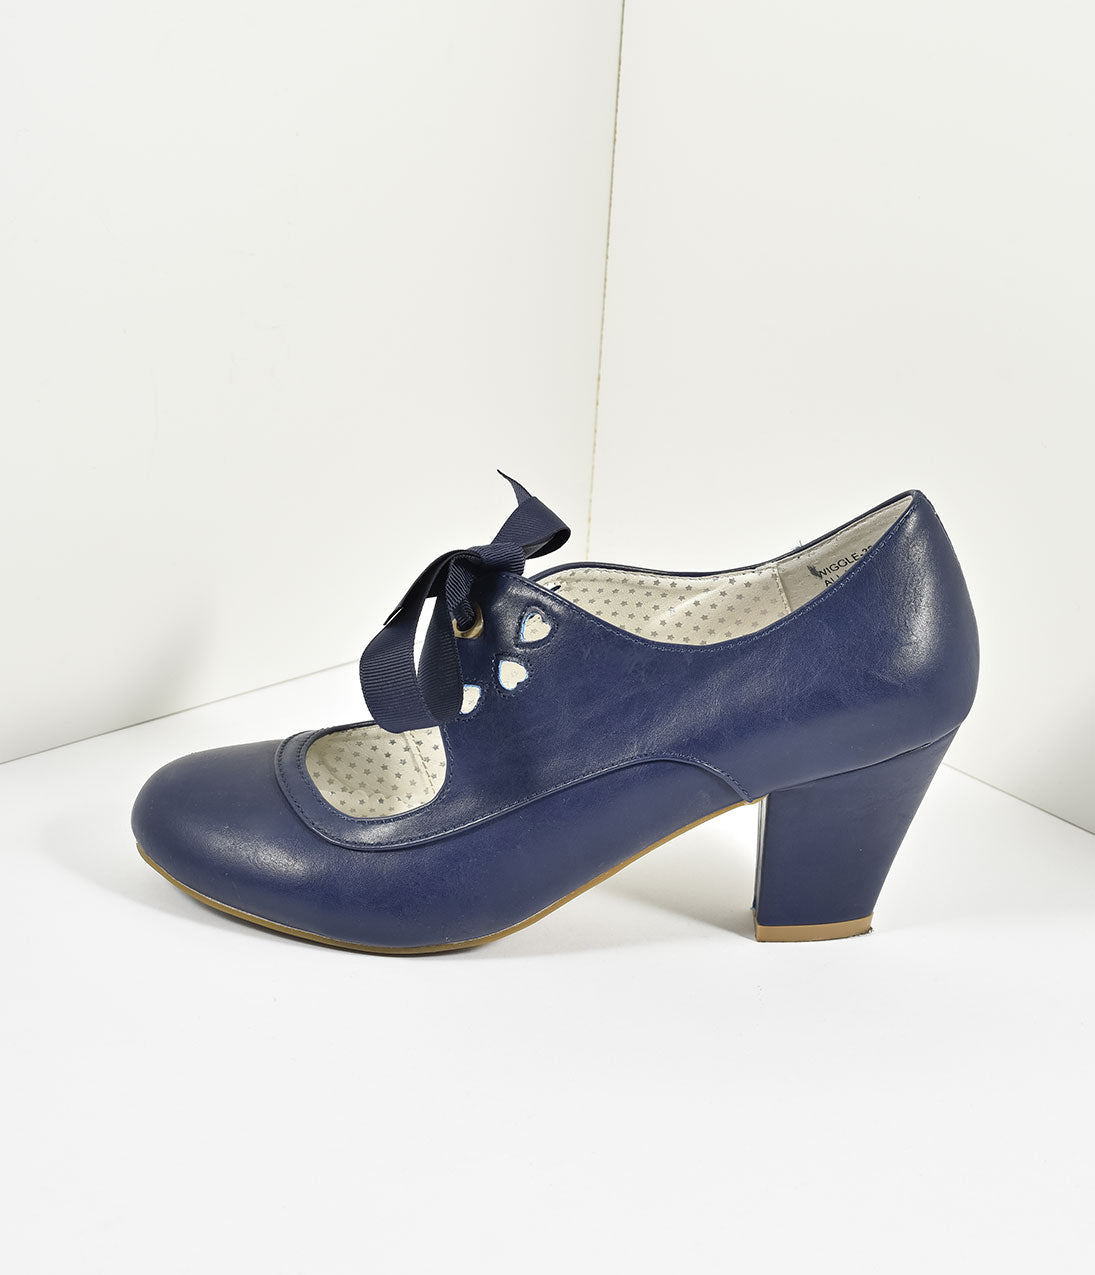 08ea7a85c34bb New 1940s Shoes: Wedge, Slingback, Oxford, Peep Toe